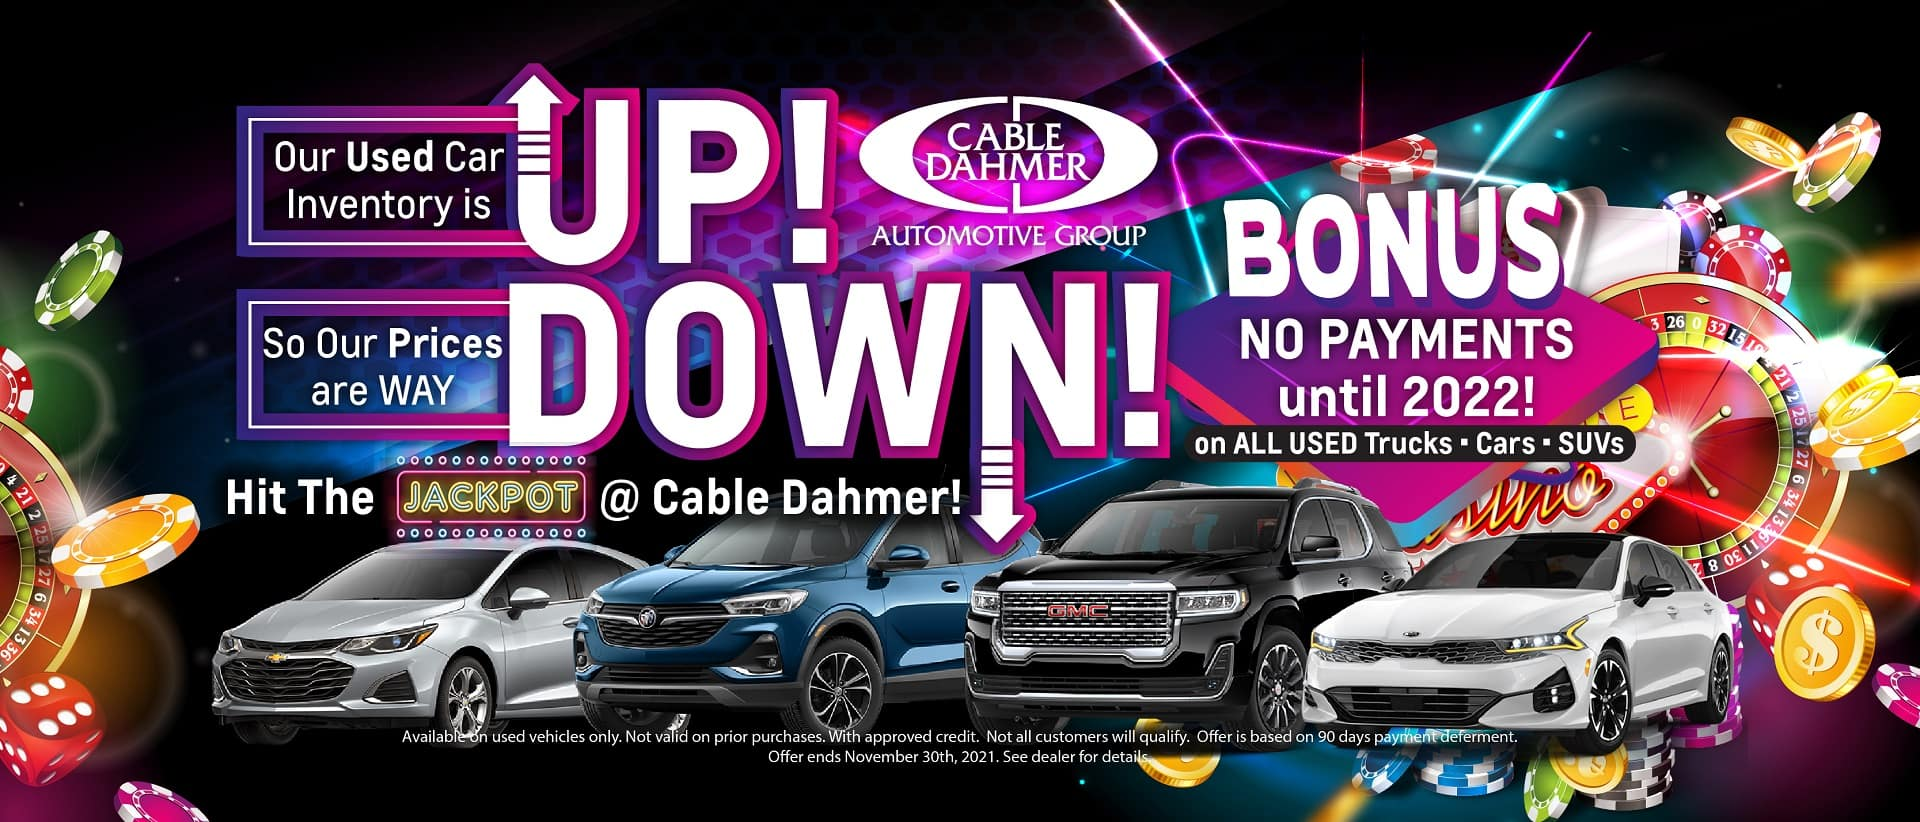 Cable Dahmer – Used Cars no payment-jackpot_Website Rotator resized